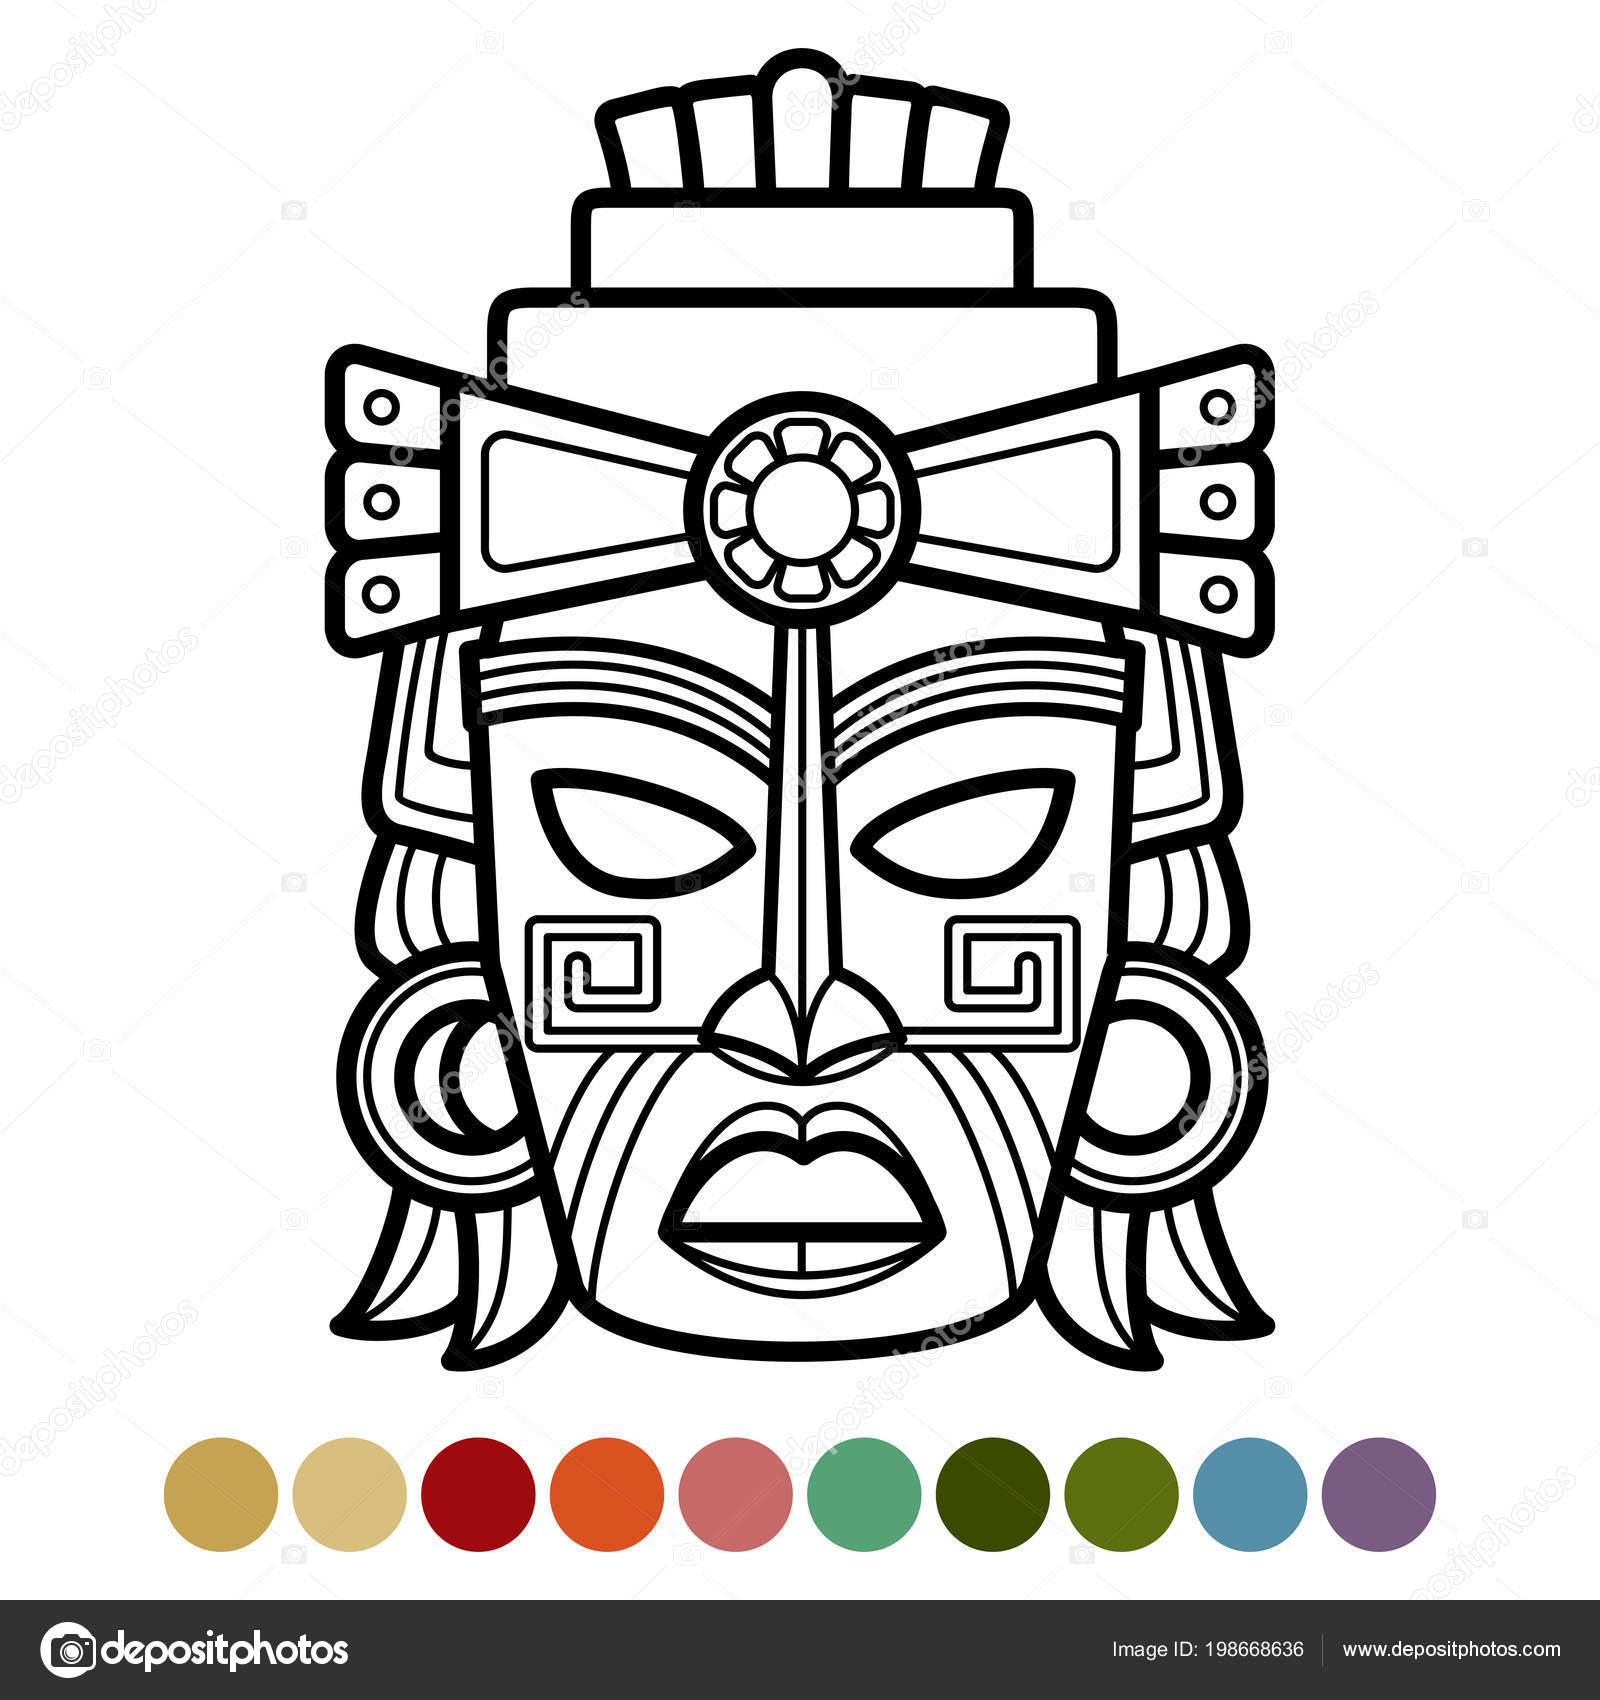 Mexican, African, Aztec Mask Coloring Page 198668636 in Aztec Mask Template